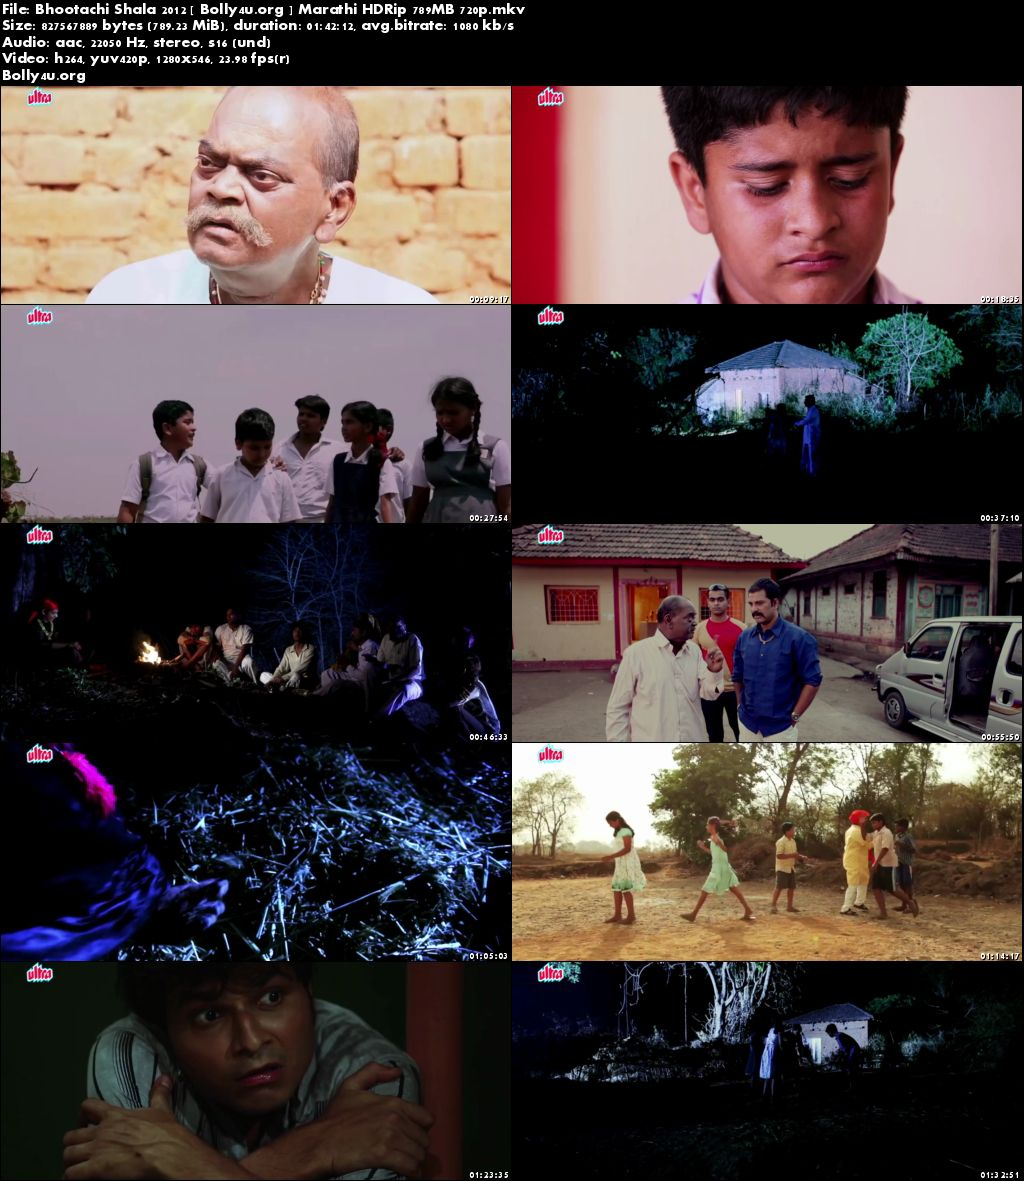 Bhootachi Shala 2012 HDRip 750MB Marathi Movie 720p Download